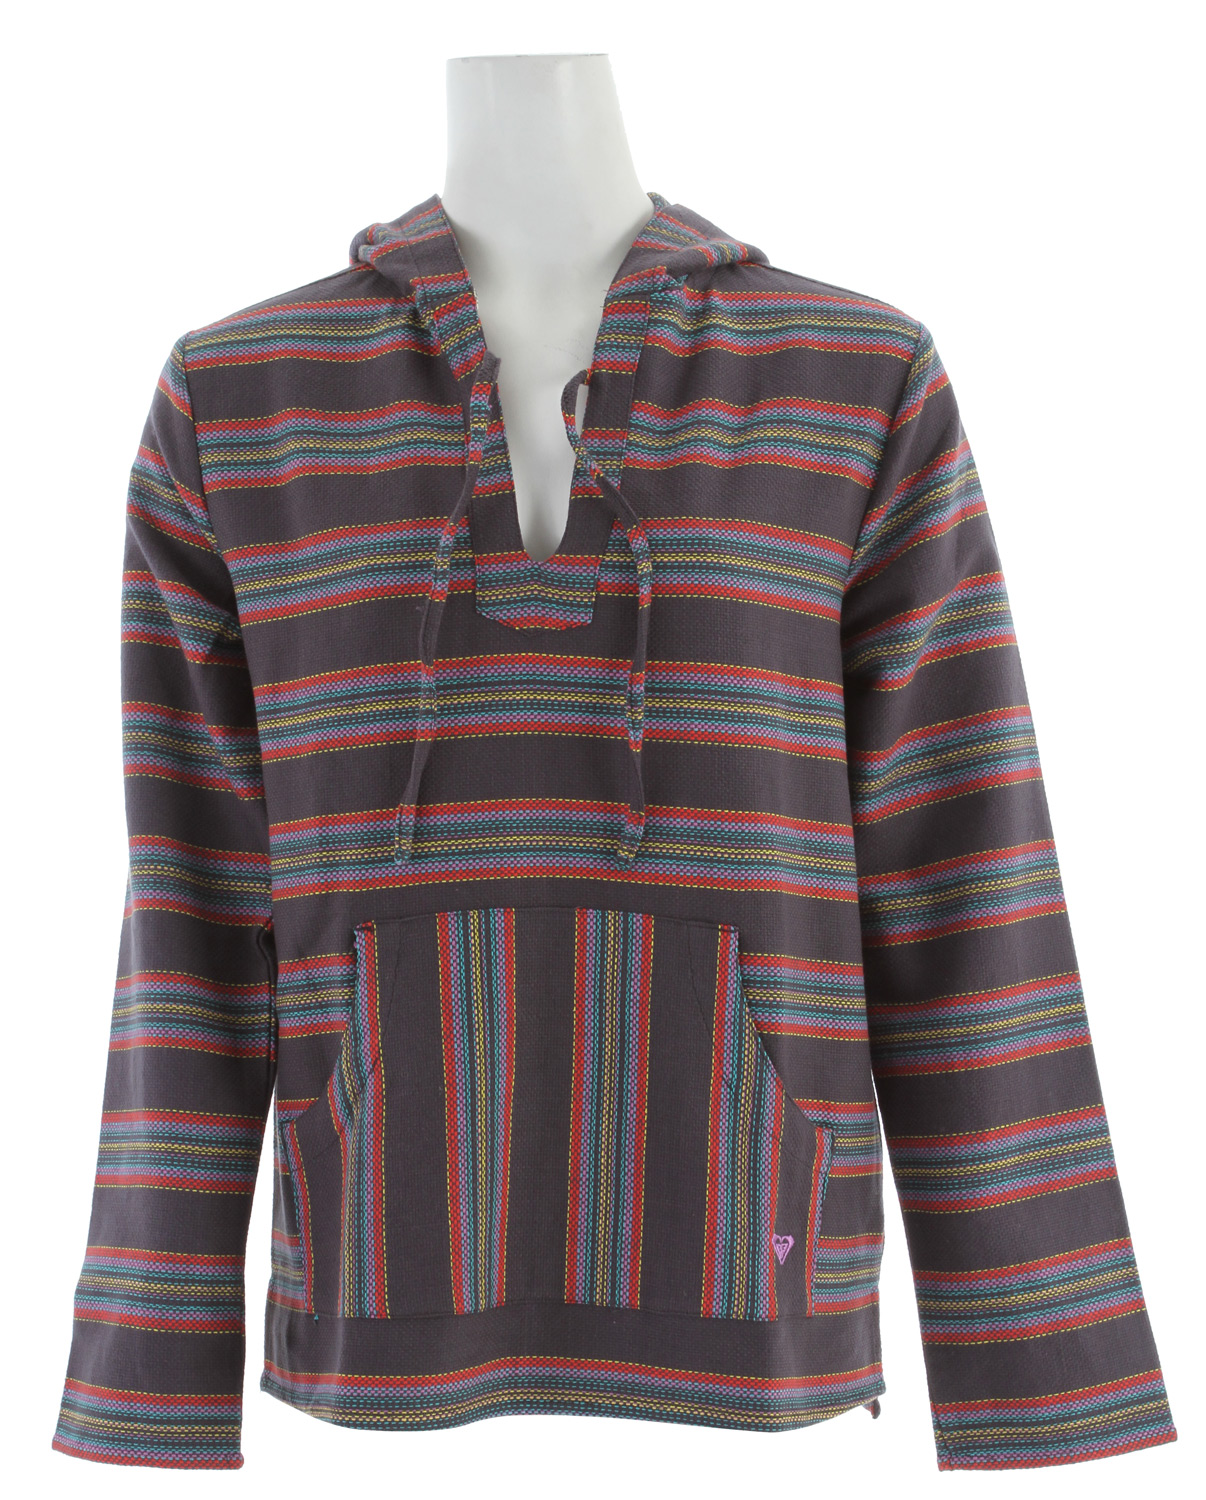 "Surf Key Features of the Roxy Tequila 2 Hoodie: 100% cotton heavy yarn dye stripe Beach pullover with kanga pocket Contrast stripe at hood 27"" hps - $44.95"